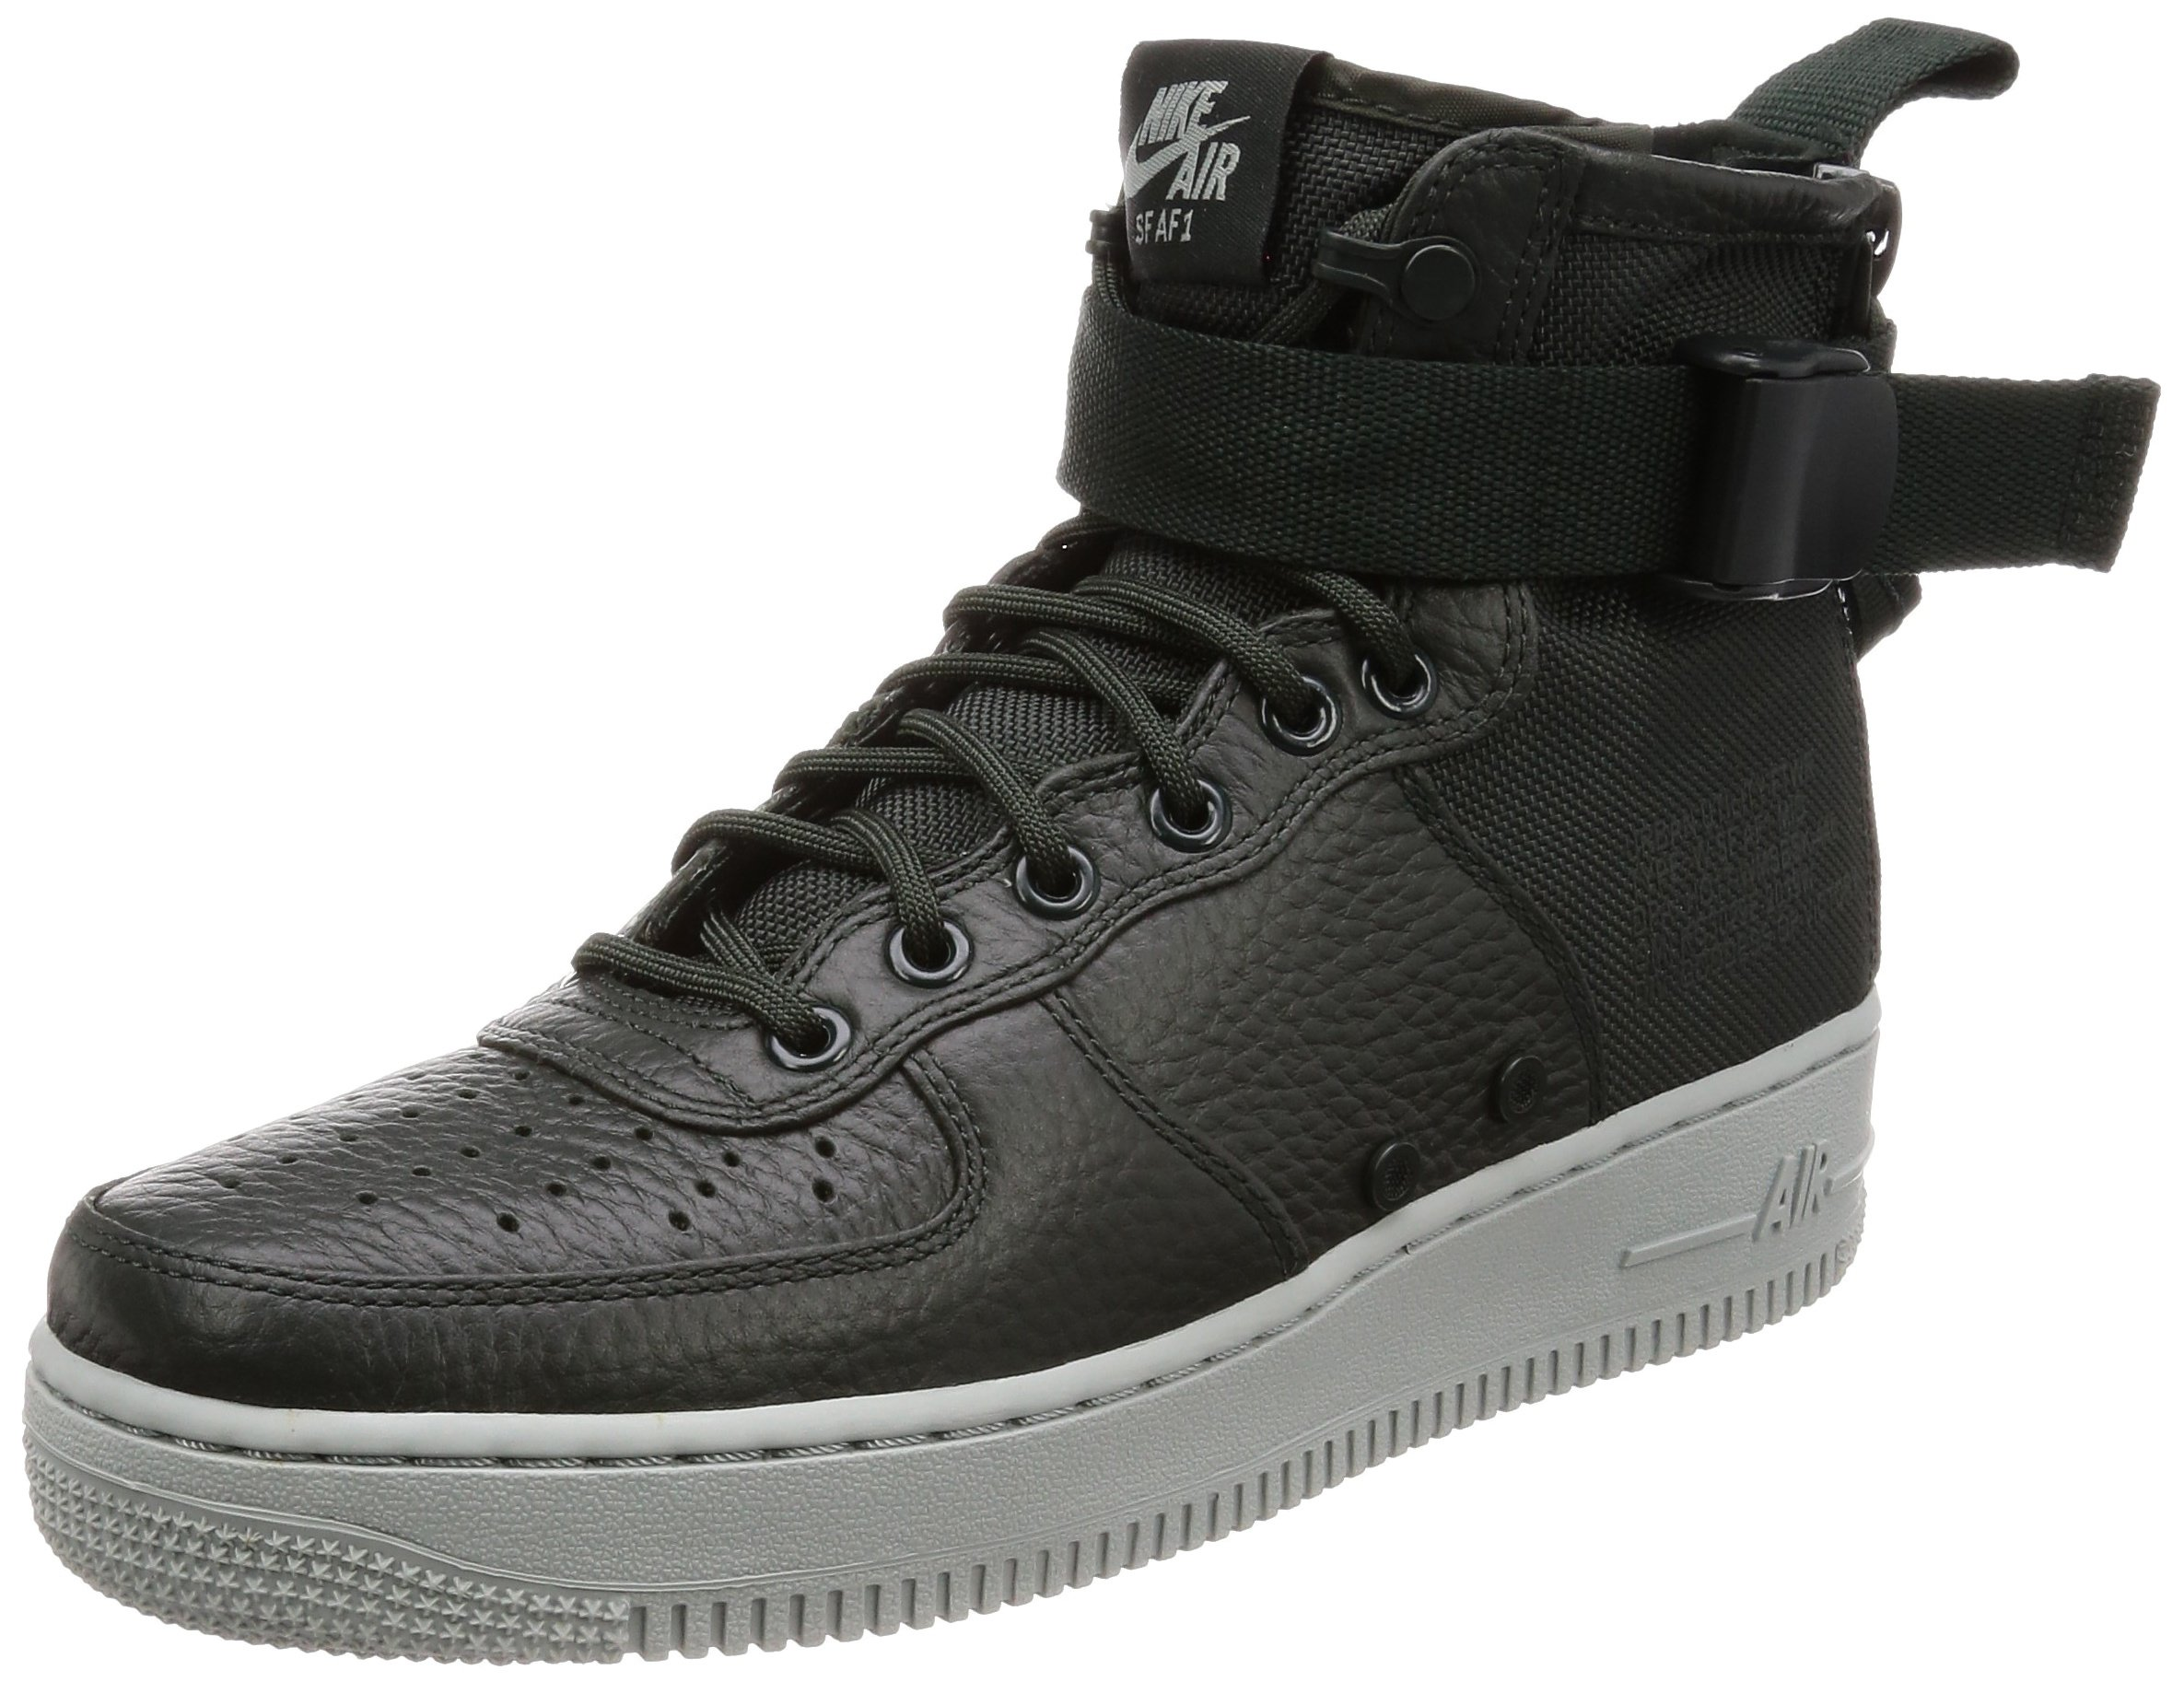 SF Air Force 1 Mid Outdoor Green